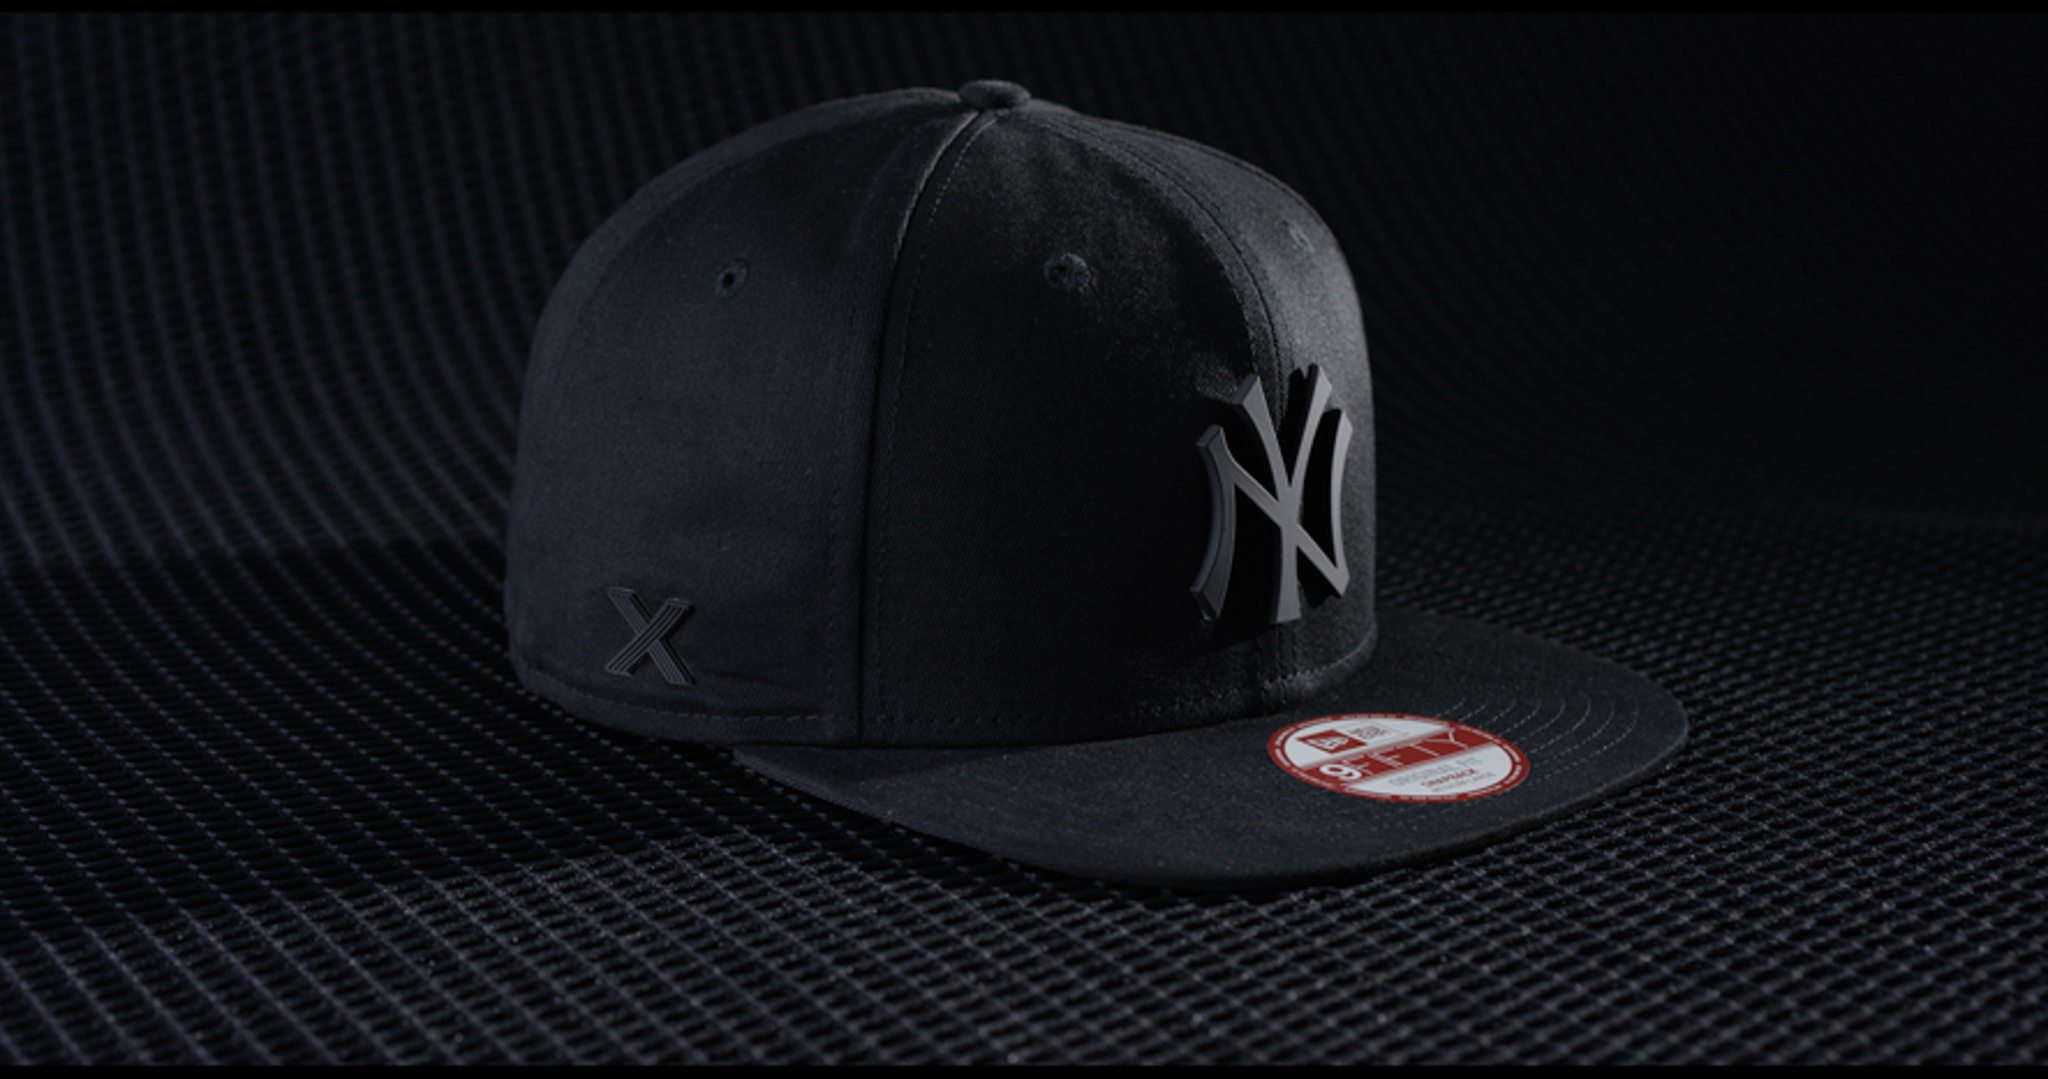 New Era x Foot Locker Edition X 1